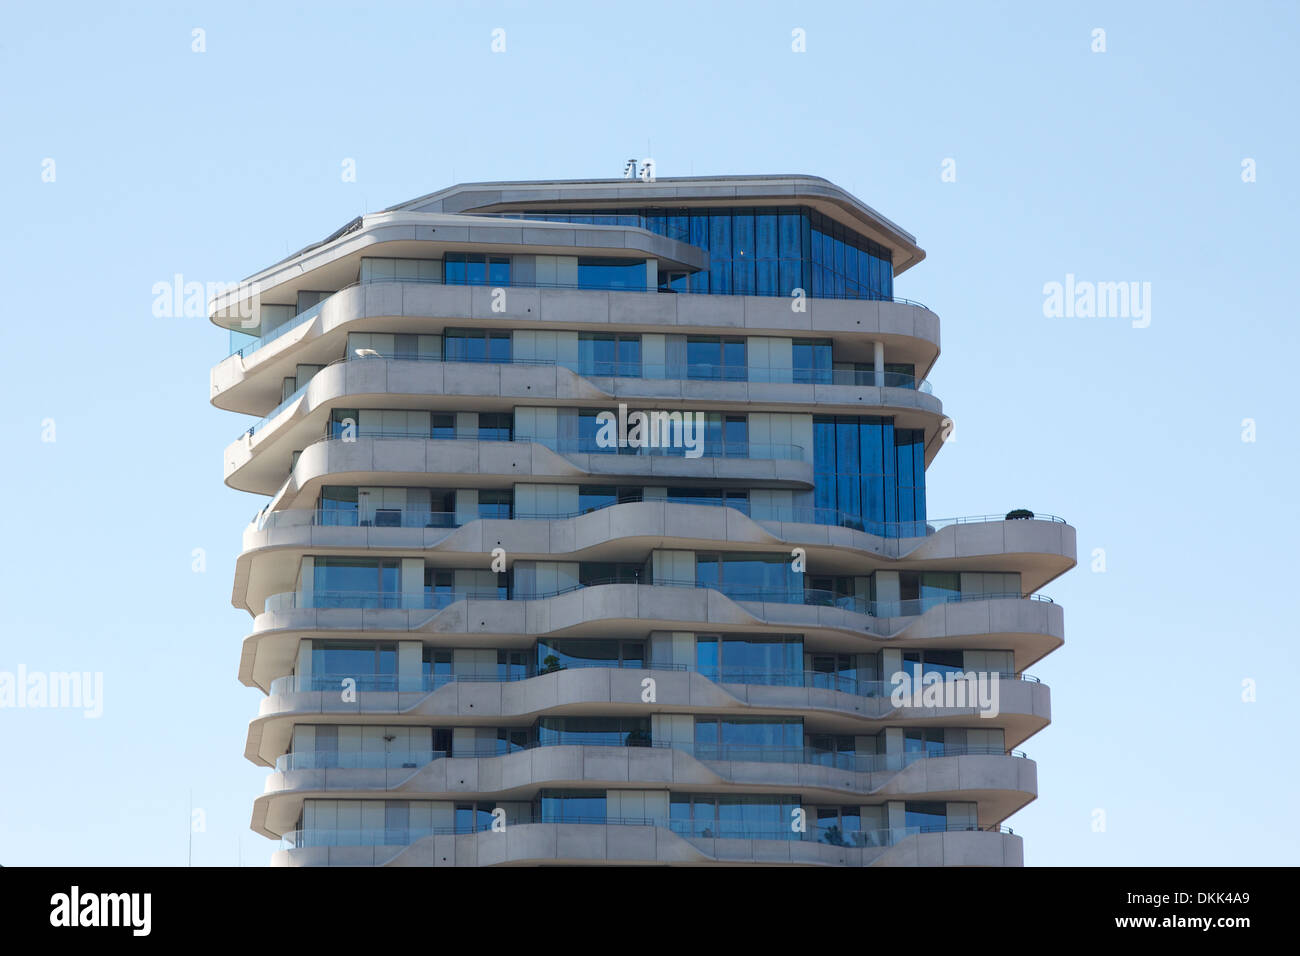 Penthouse of the landmark Marco-Polo-Tower luxury condominium in ...